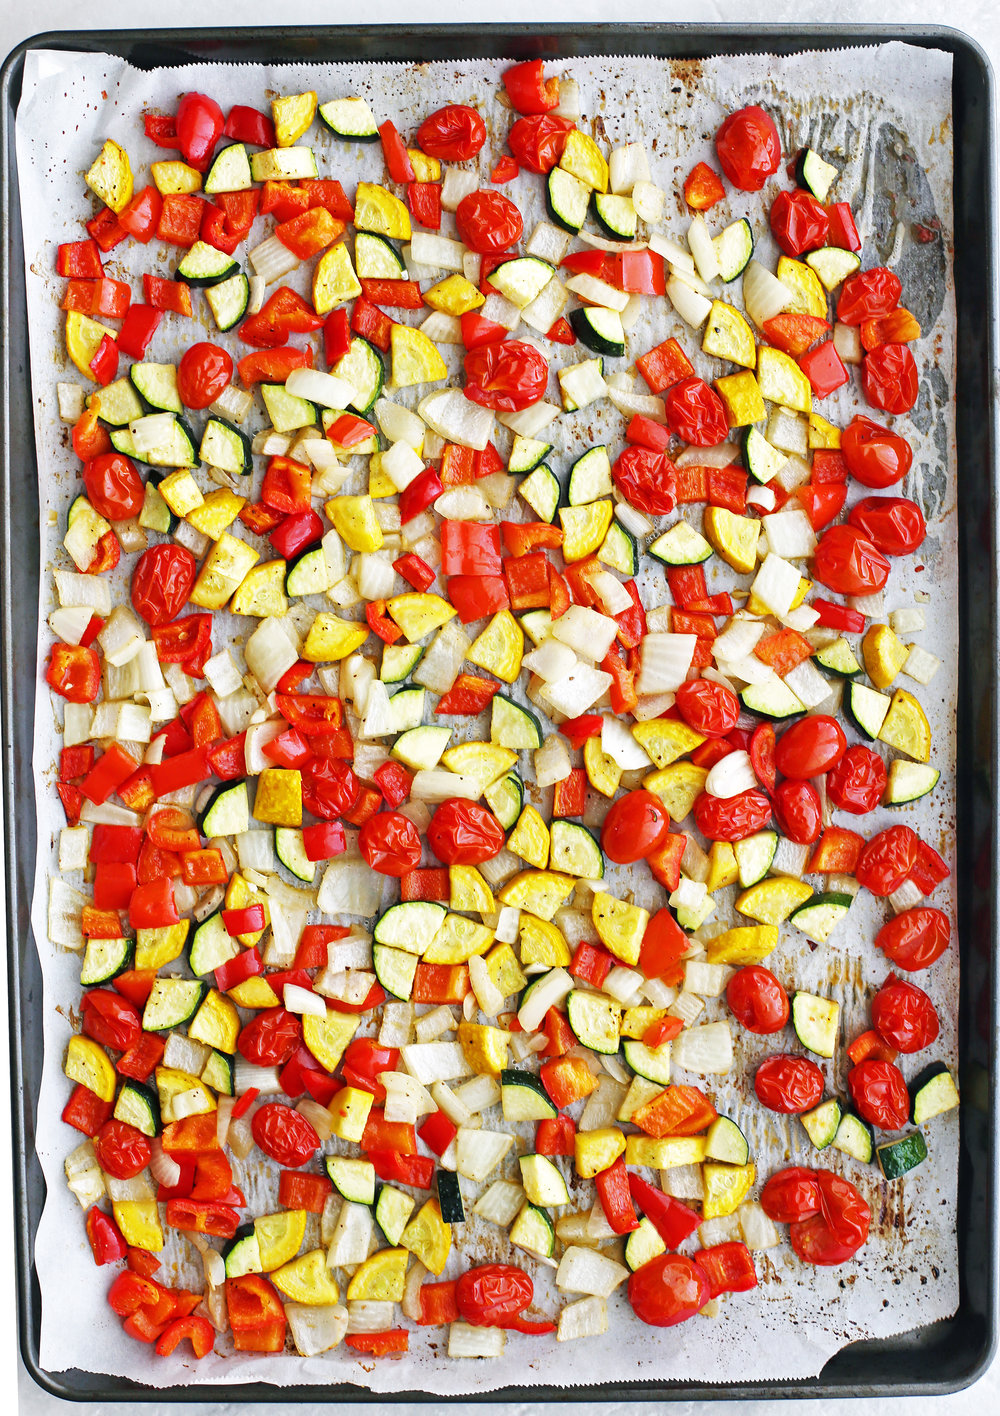 Roasted tomatoes, chopped zucchini, yellow squash, bell peppers, and onions on a baking sheet.